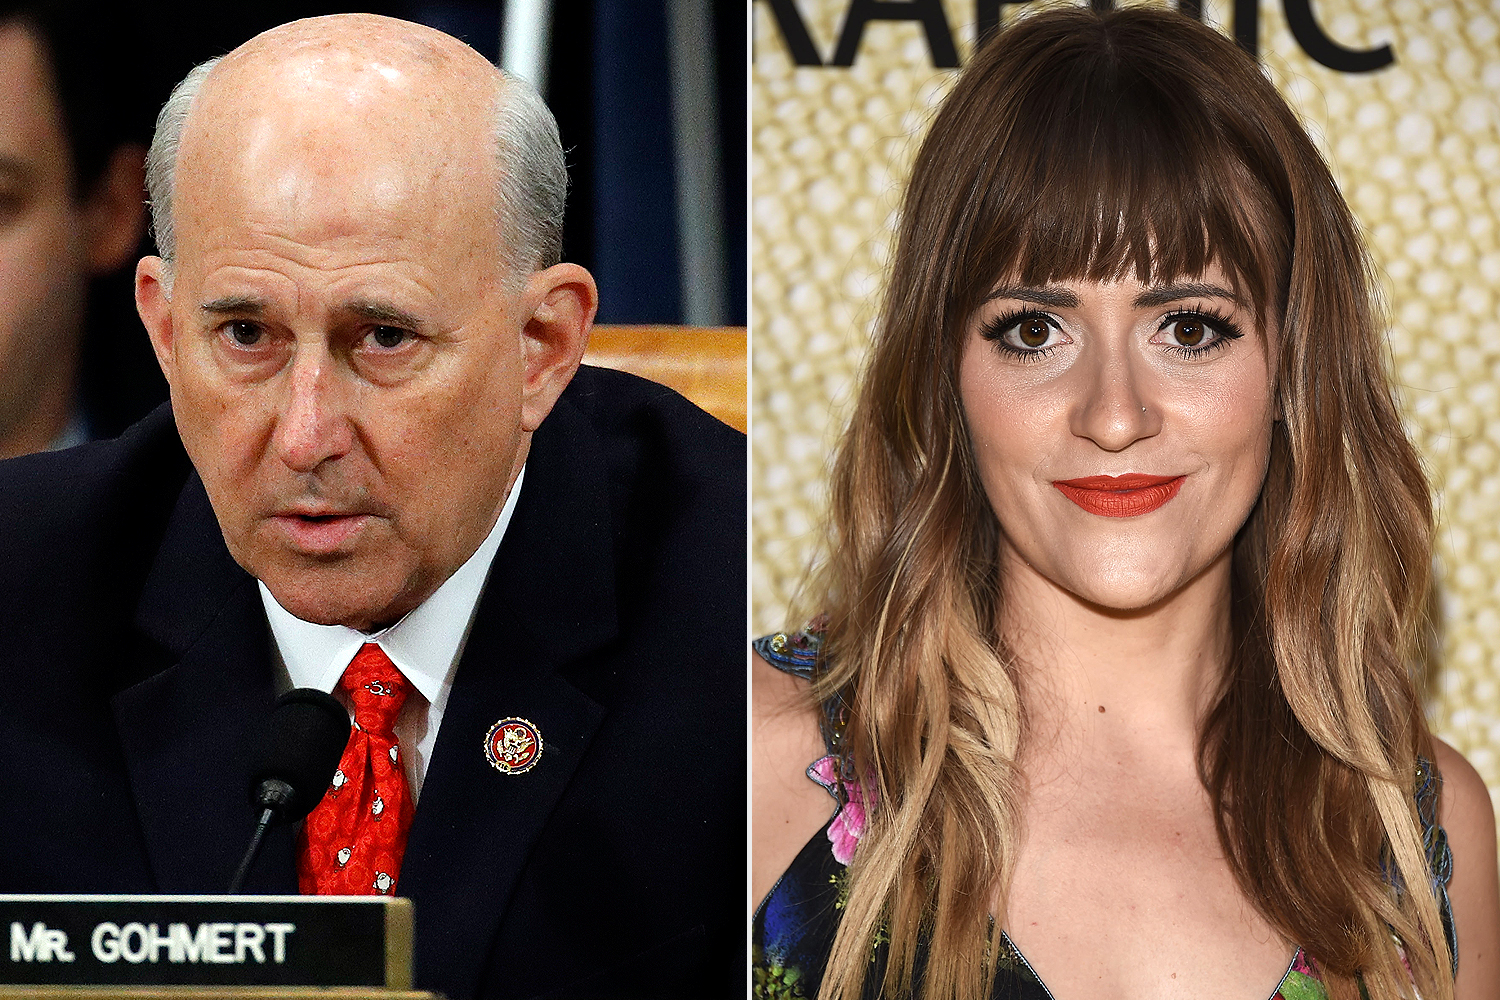 Louie Gohmert daughter